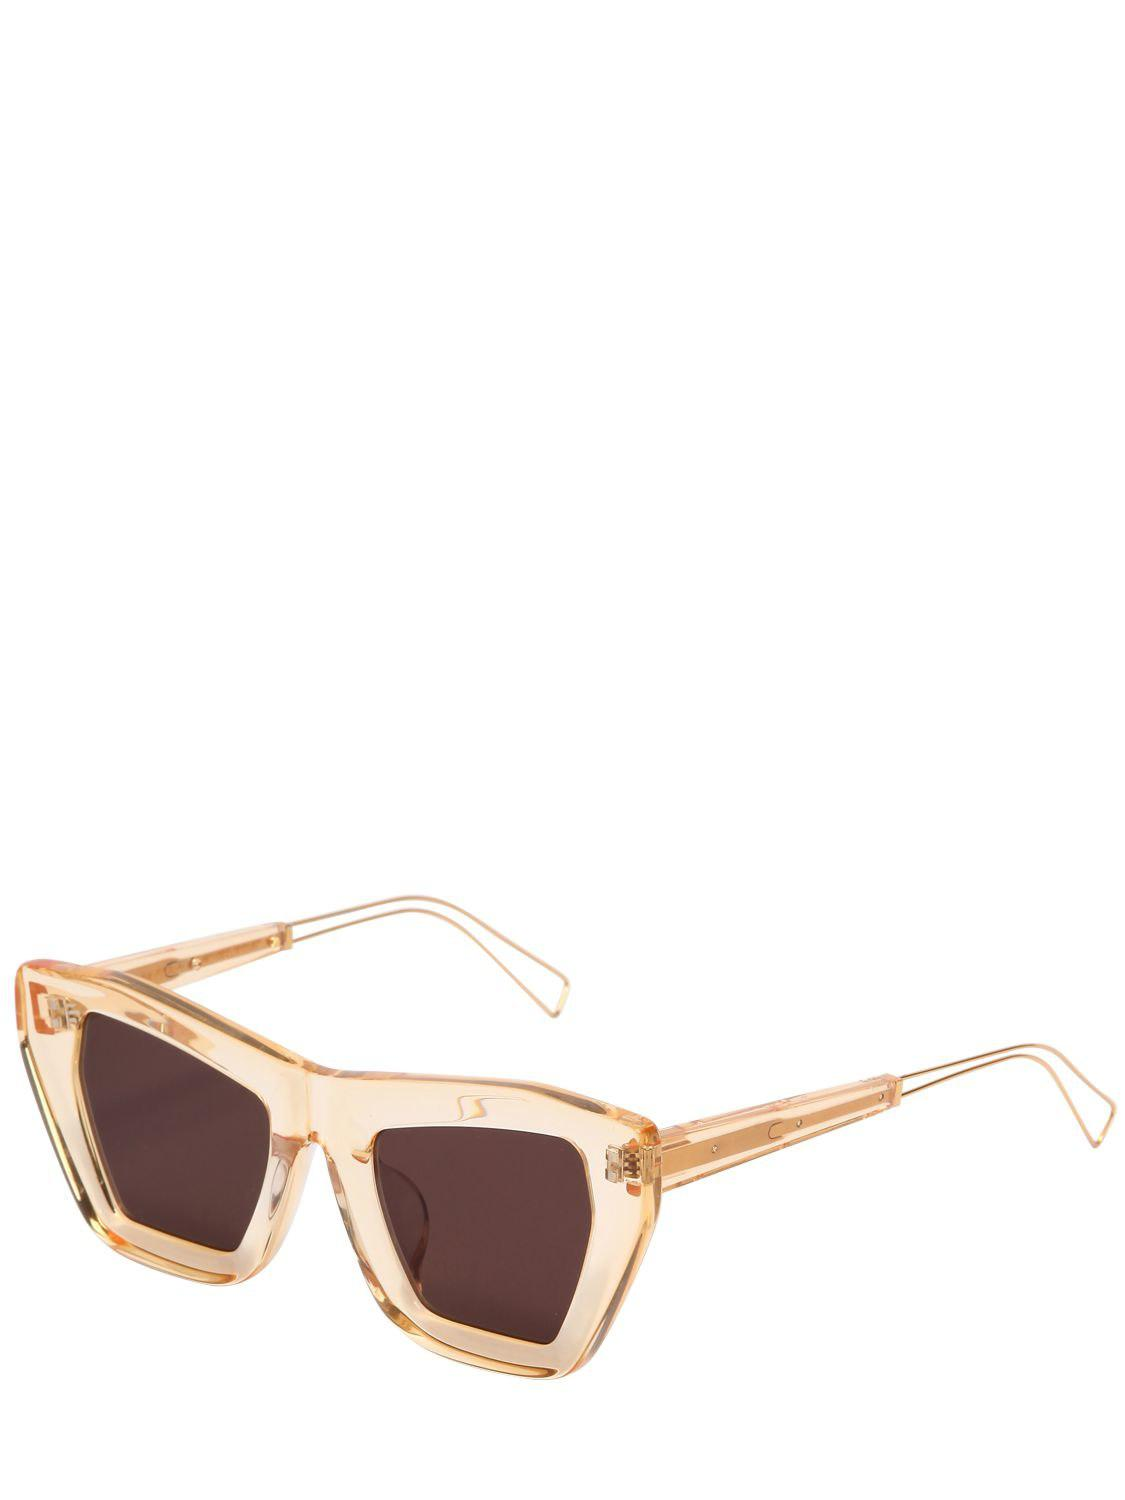 Rejina Pyo Marta Yellow Sunglasses